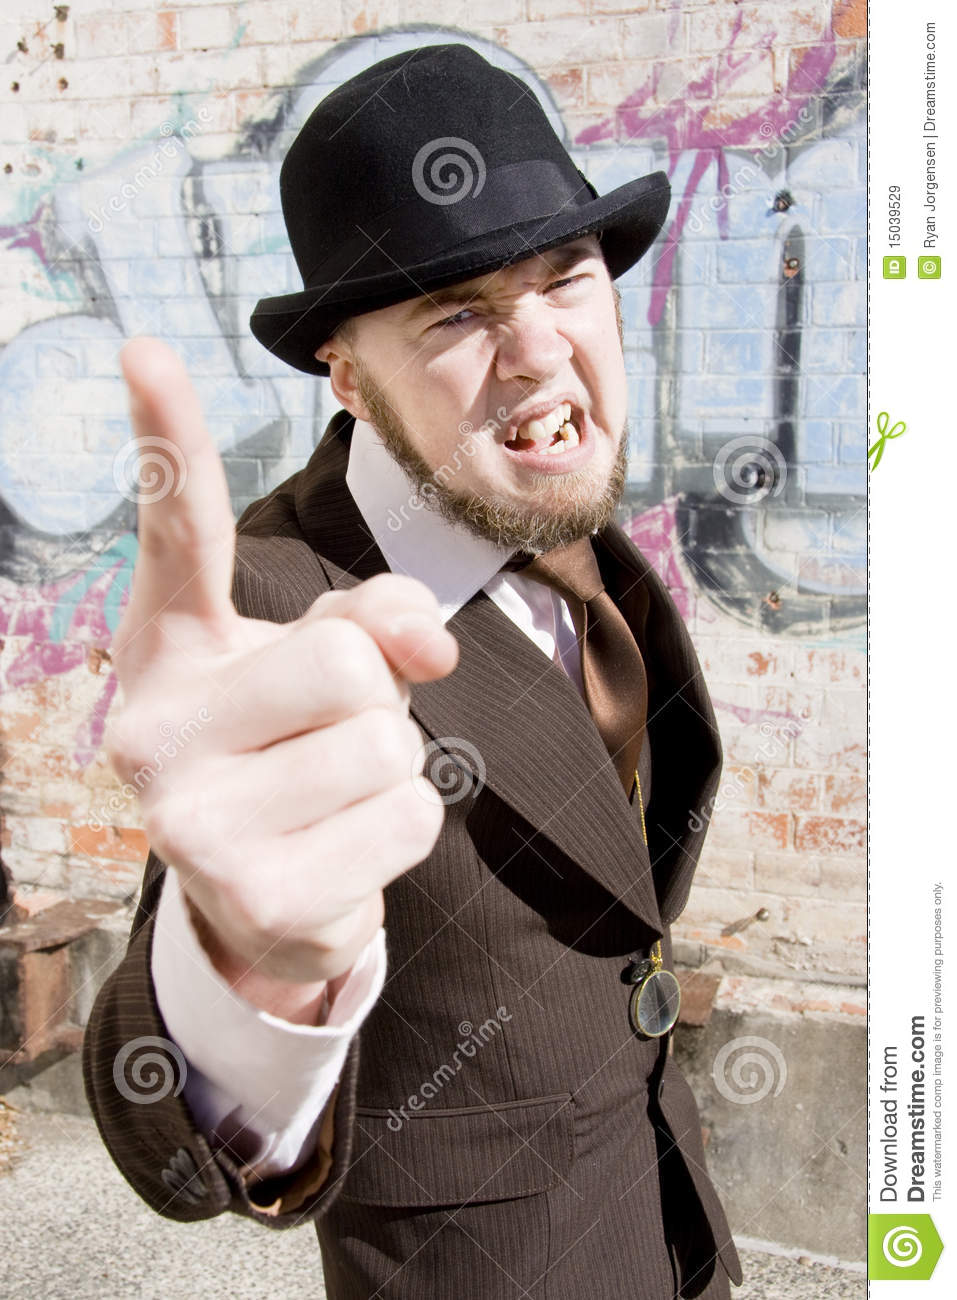 Vintage man makes an angry point while pointing with one finger